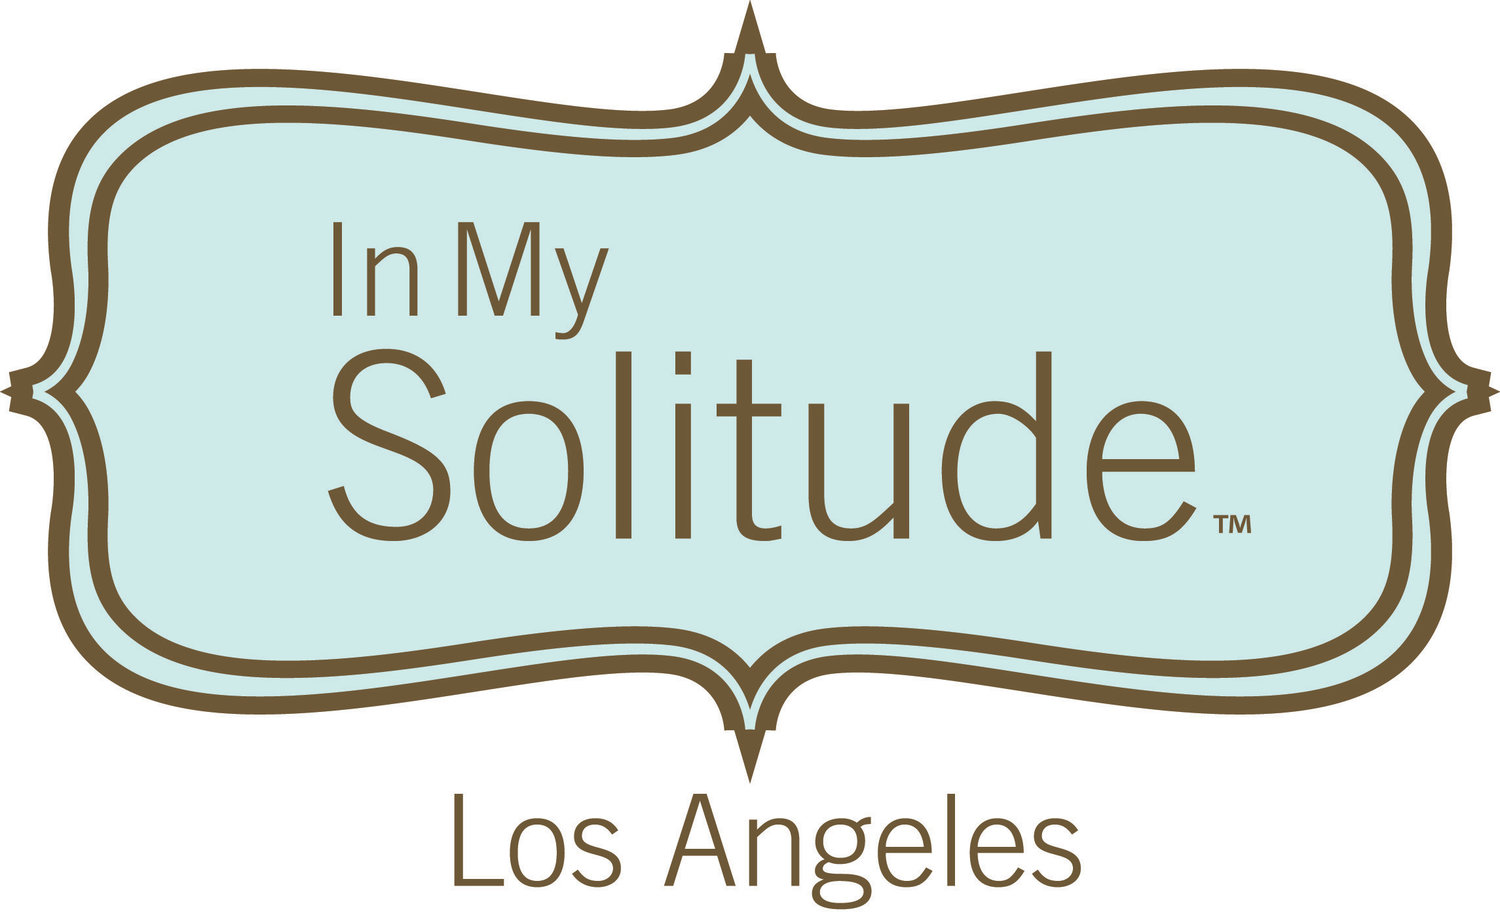 In My Solitude LA